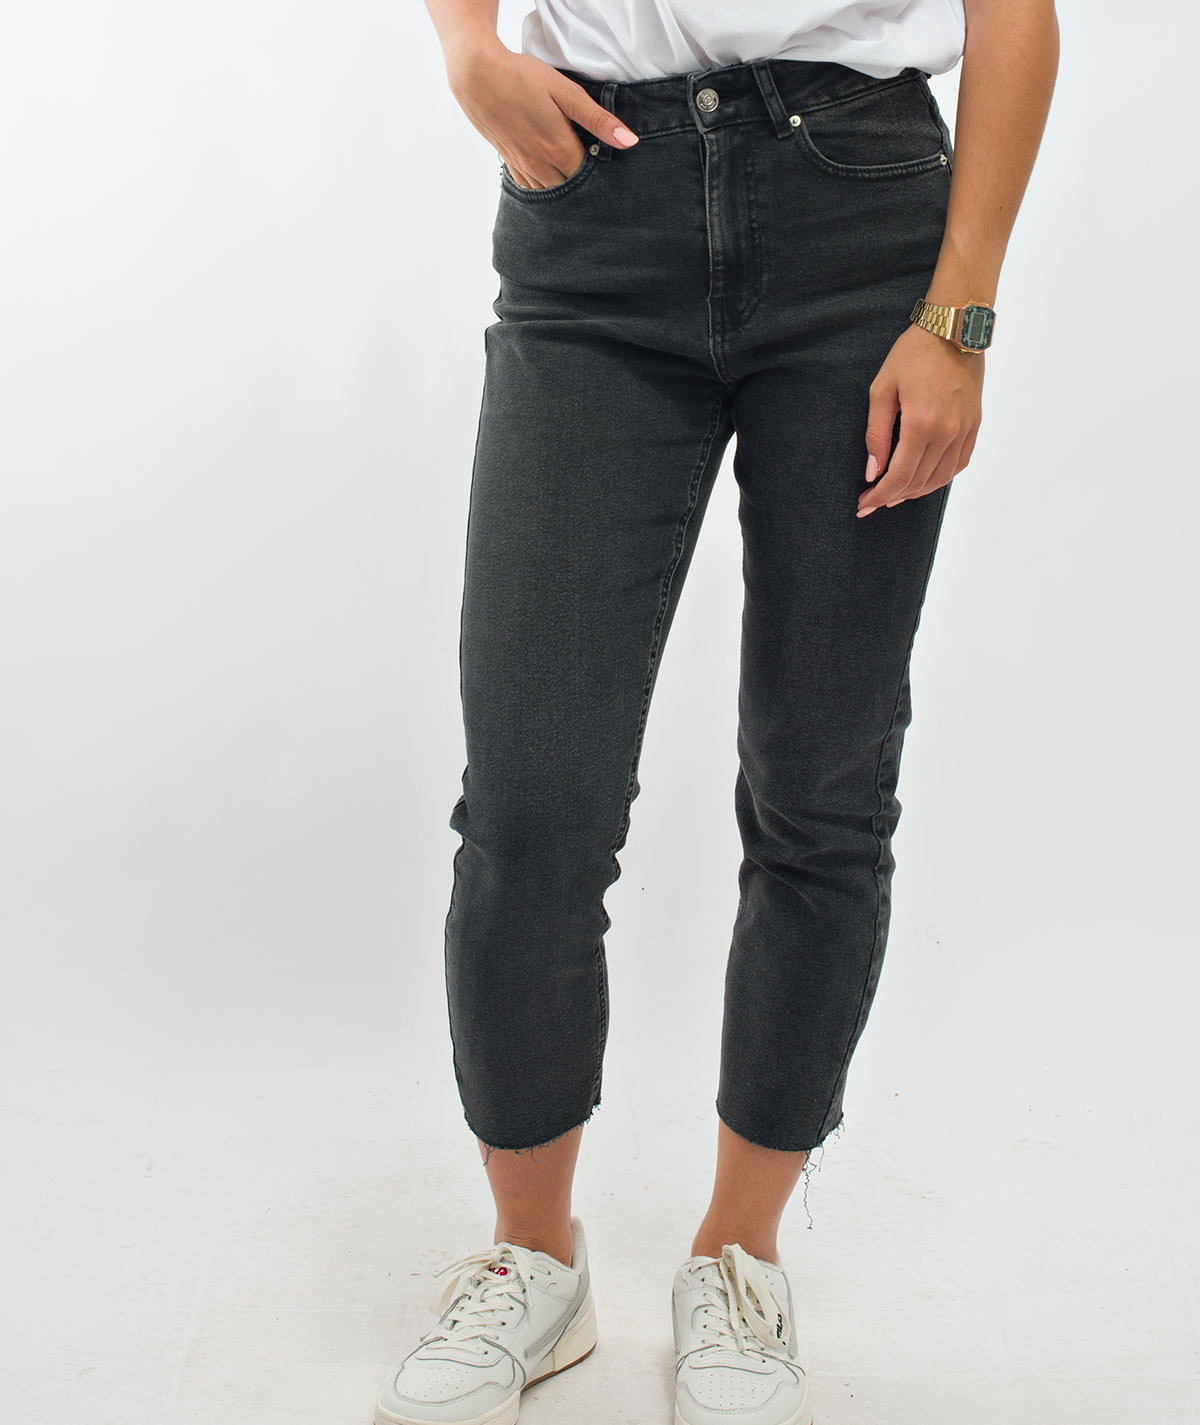 soda jeans zwart black high highwaisted mom boyfriend